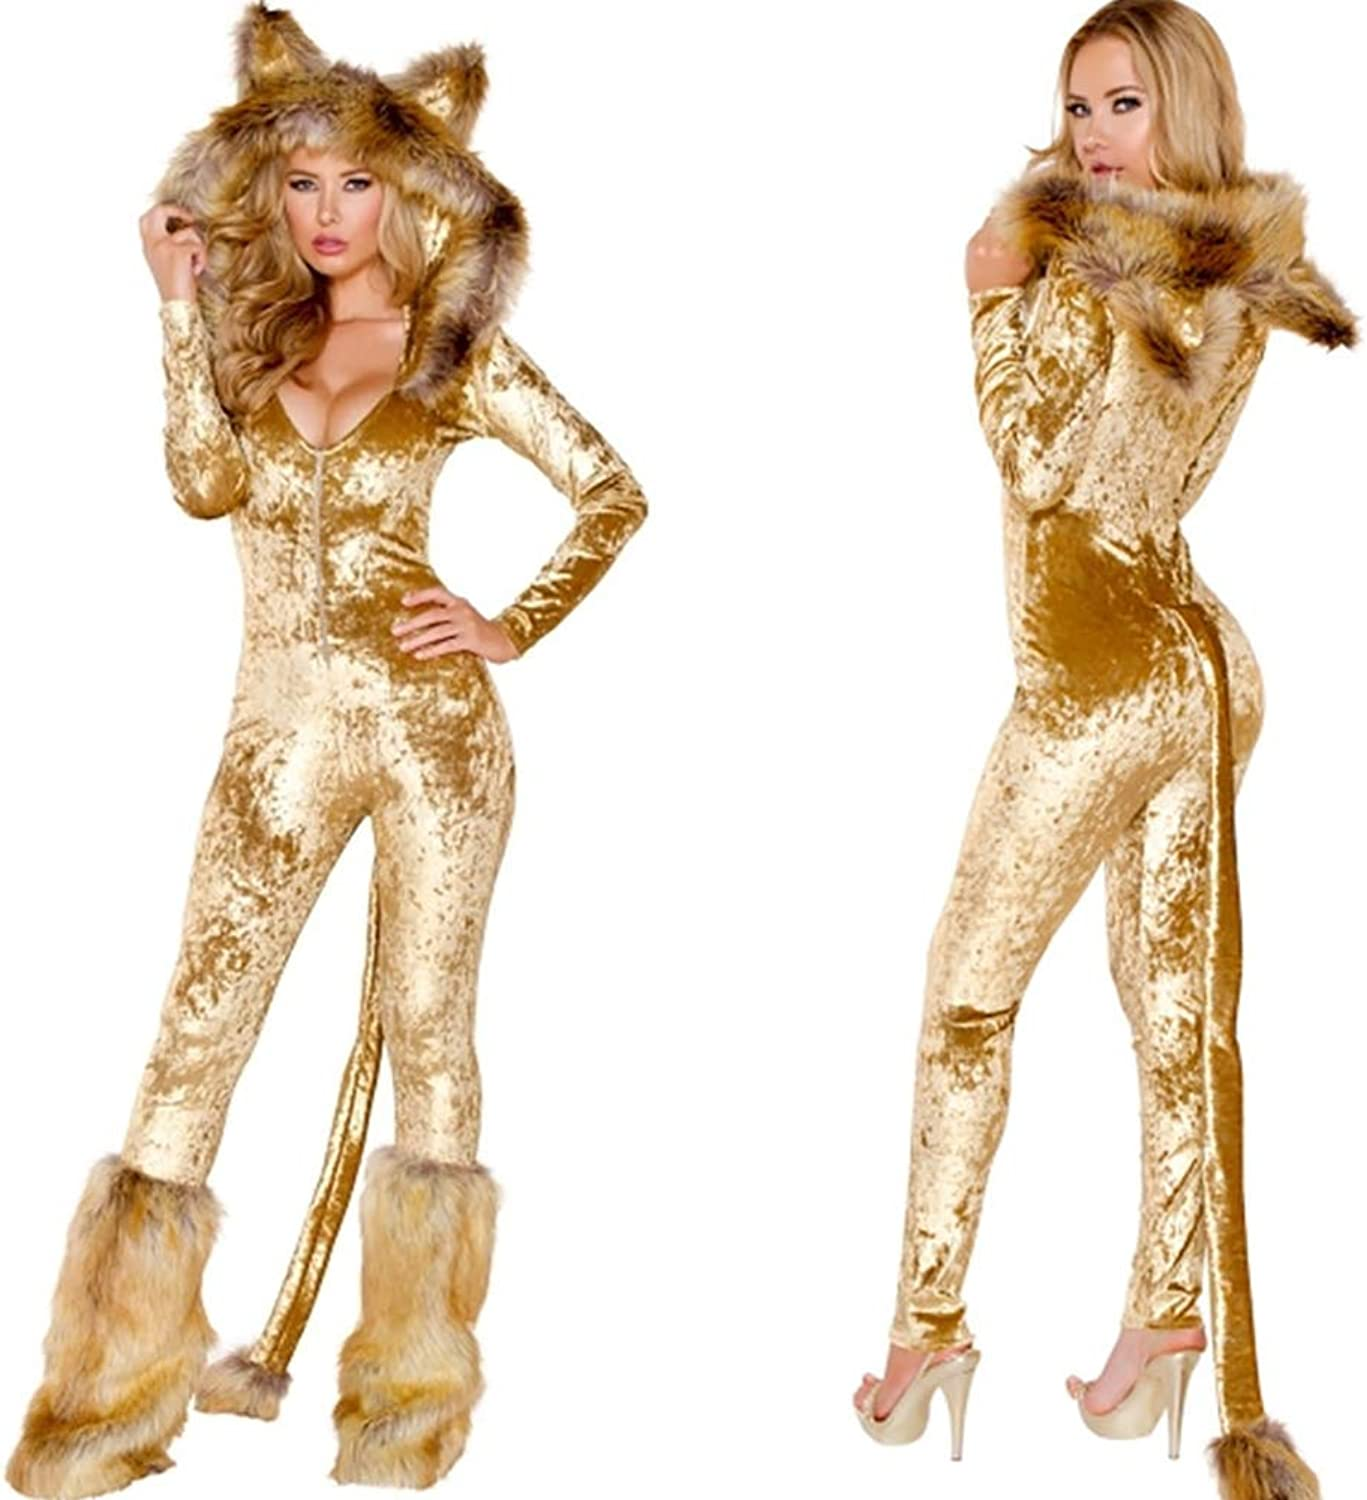 CWZJ Halloween Cosplay Costume Adult Cosplay Sexy Uniform Cat Girl Sexy Leopard Temptation Role Playing Suit Costume Suitable For Carnivals Theme Parties Halloween